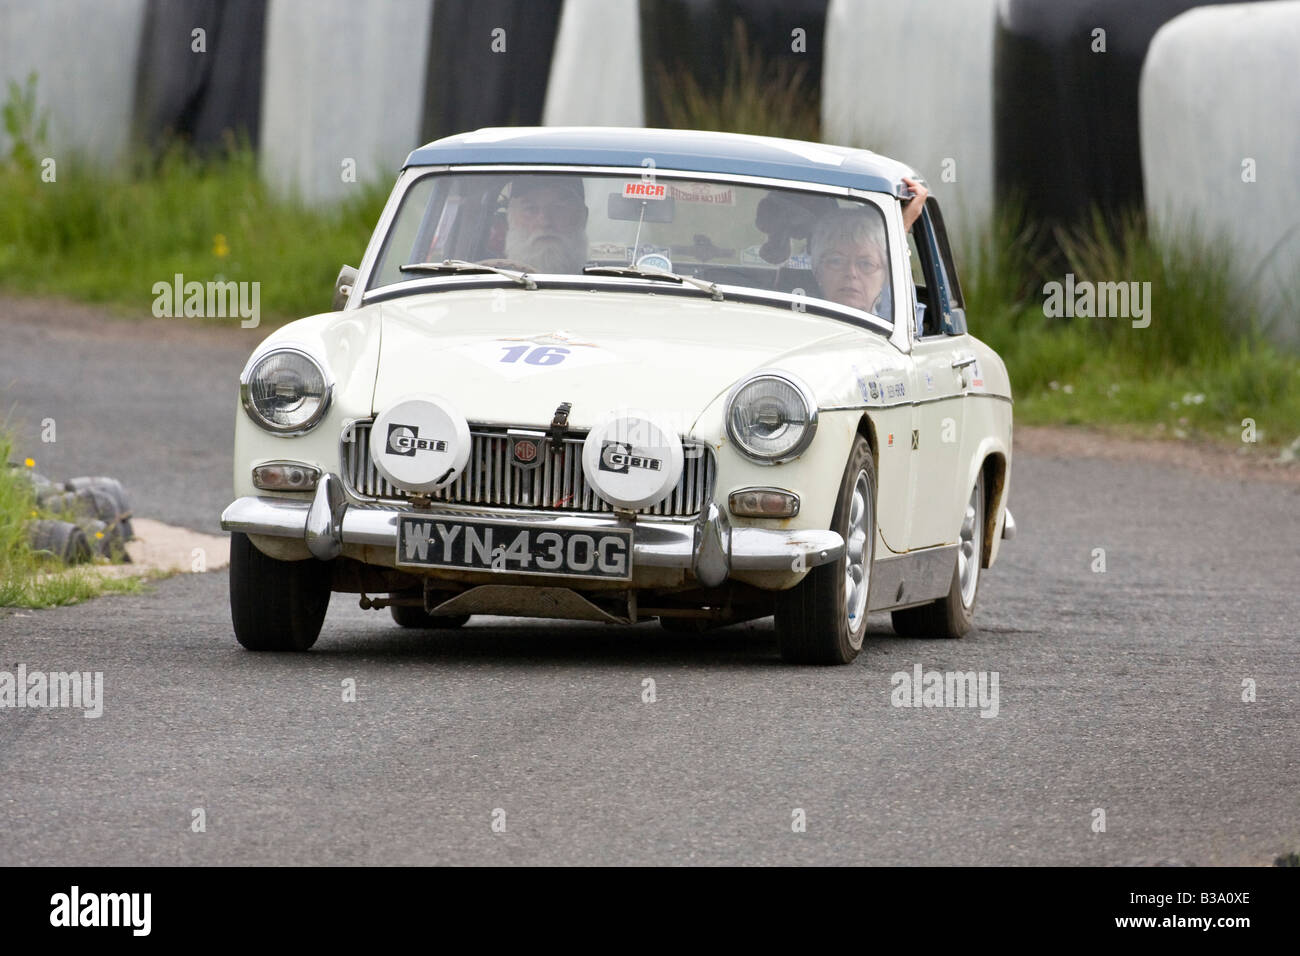 Stock Photo 1969 Mg Midget Classic Vehicle Autotest Rally Knockhill Fife Scotland 19274598 on cars for transportation